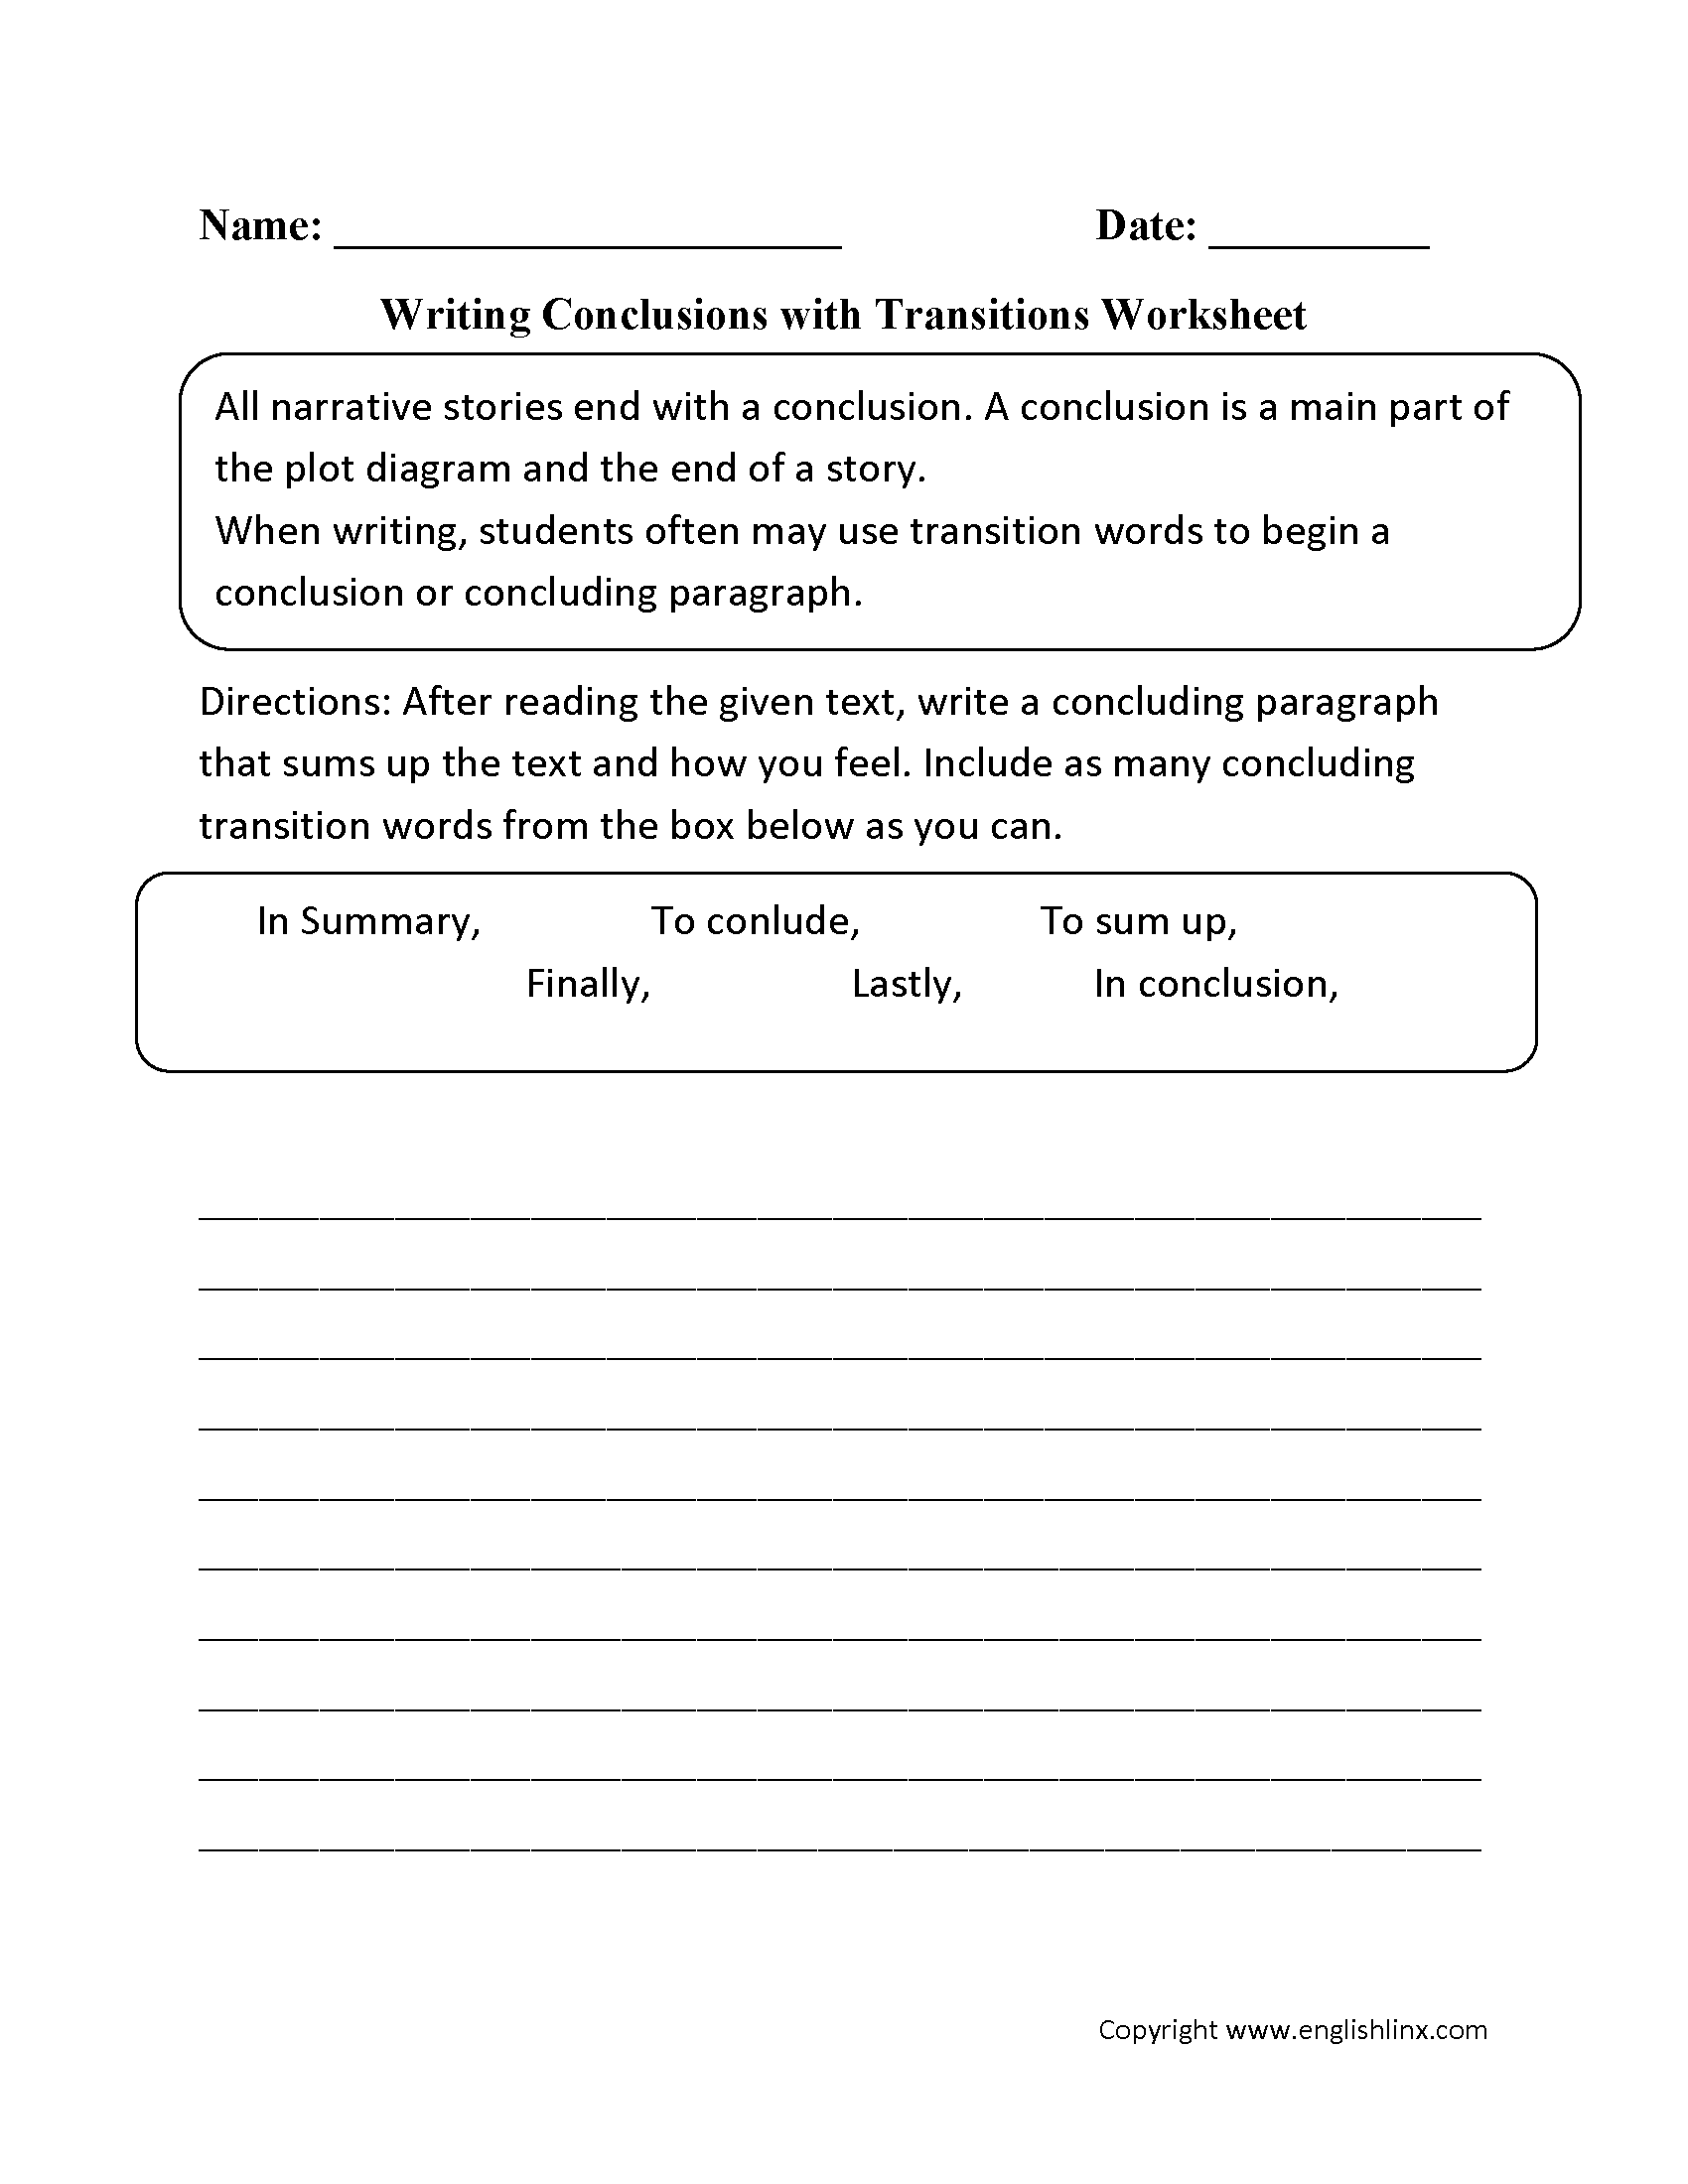 Essay Conclusion Worksheet  Writing Conclusions Worksheets Essay Conclusion Worksheet